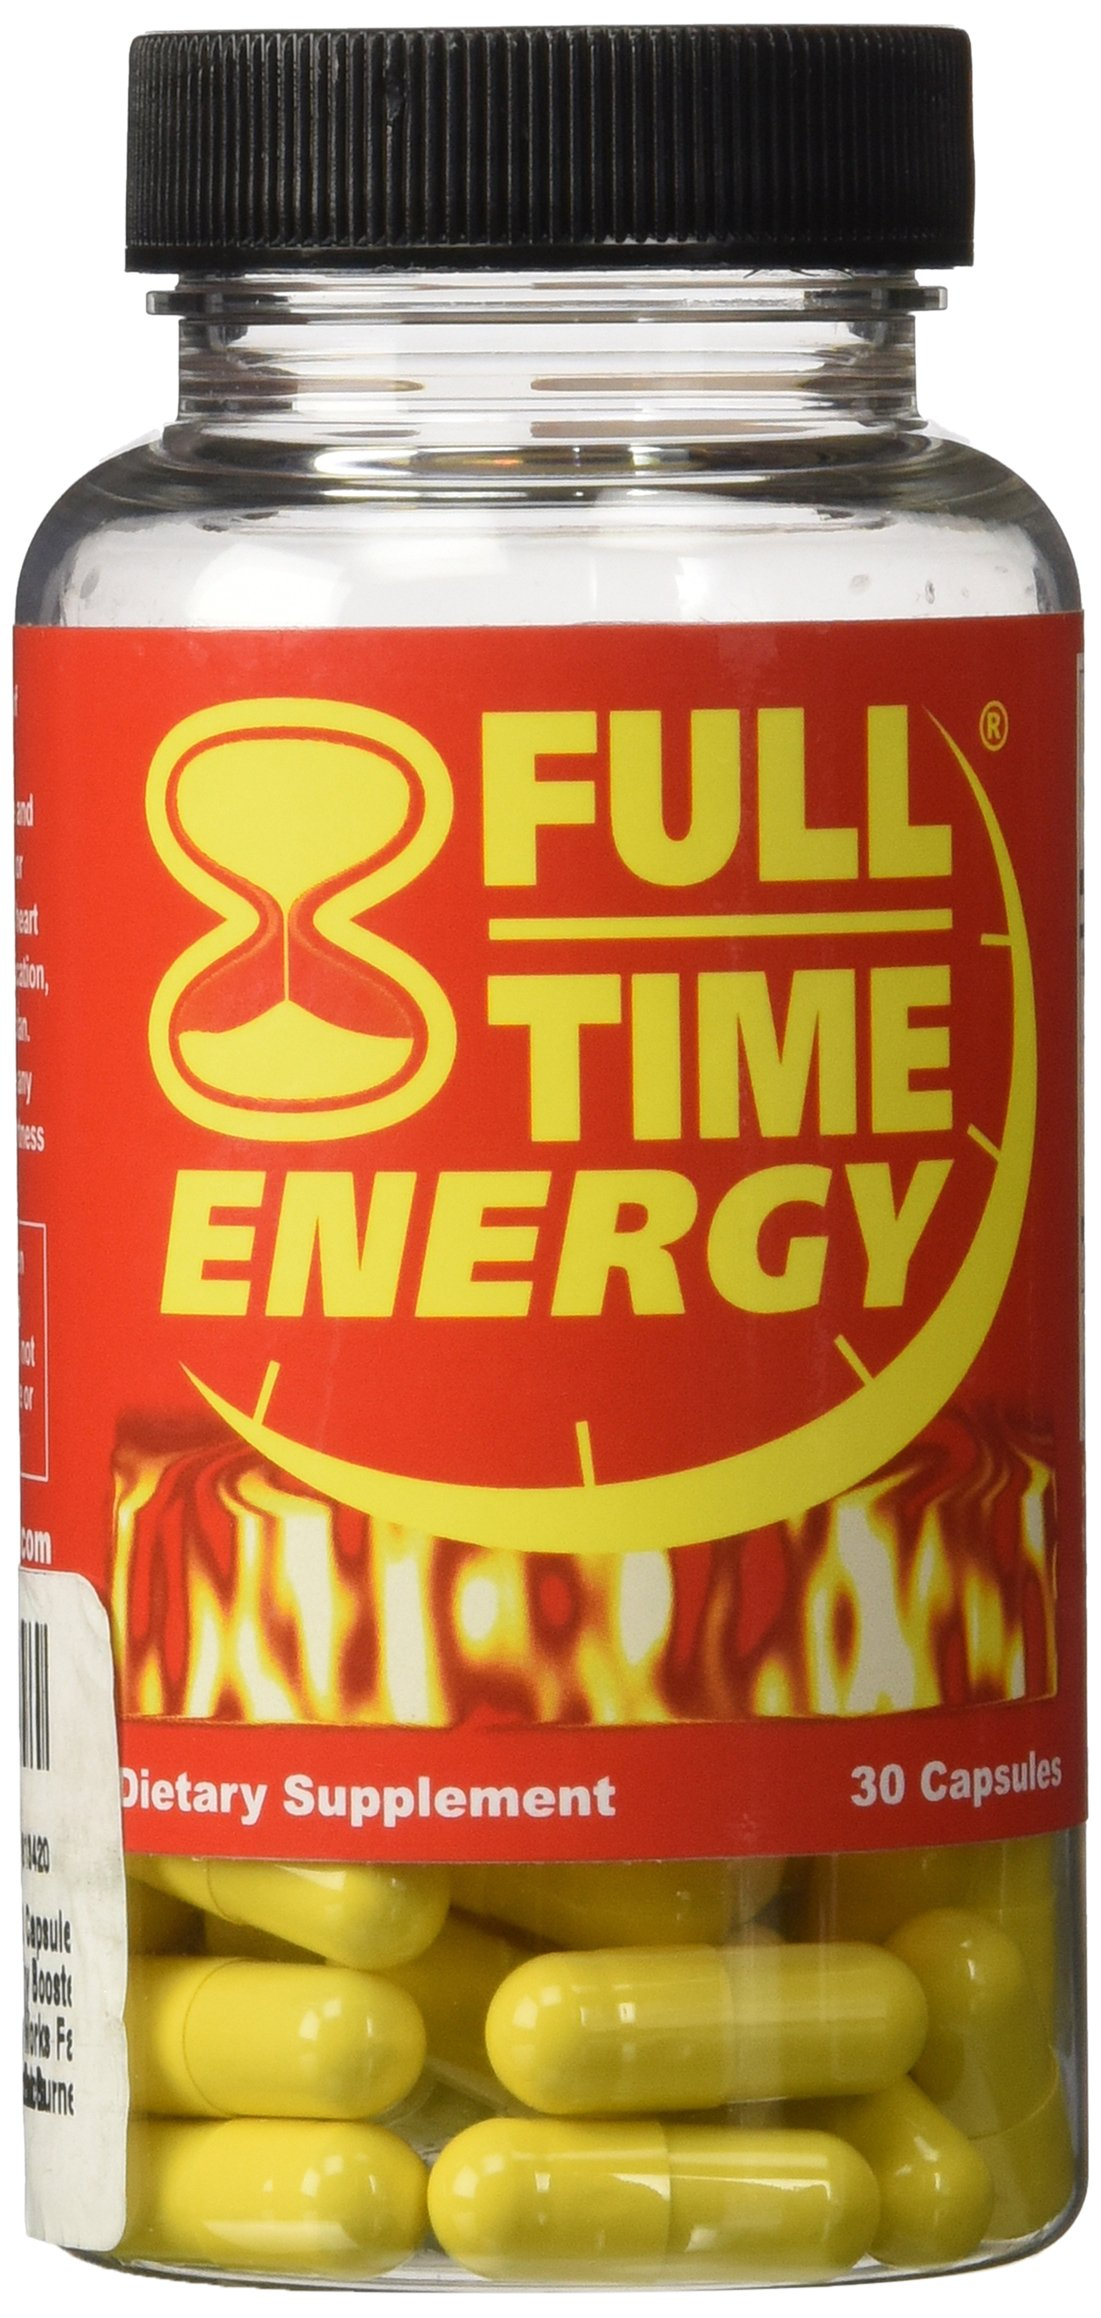 full time energy pills reviews